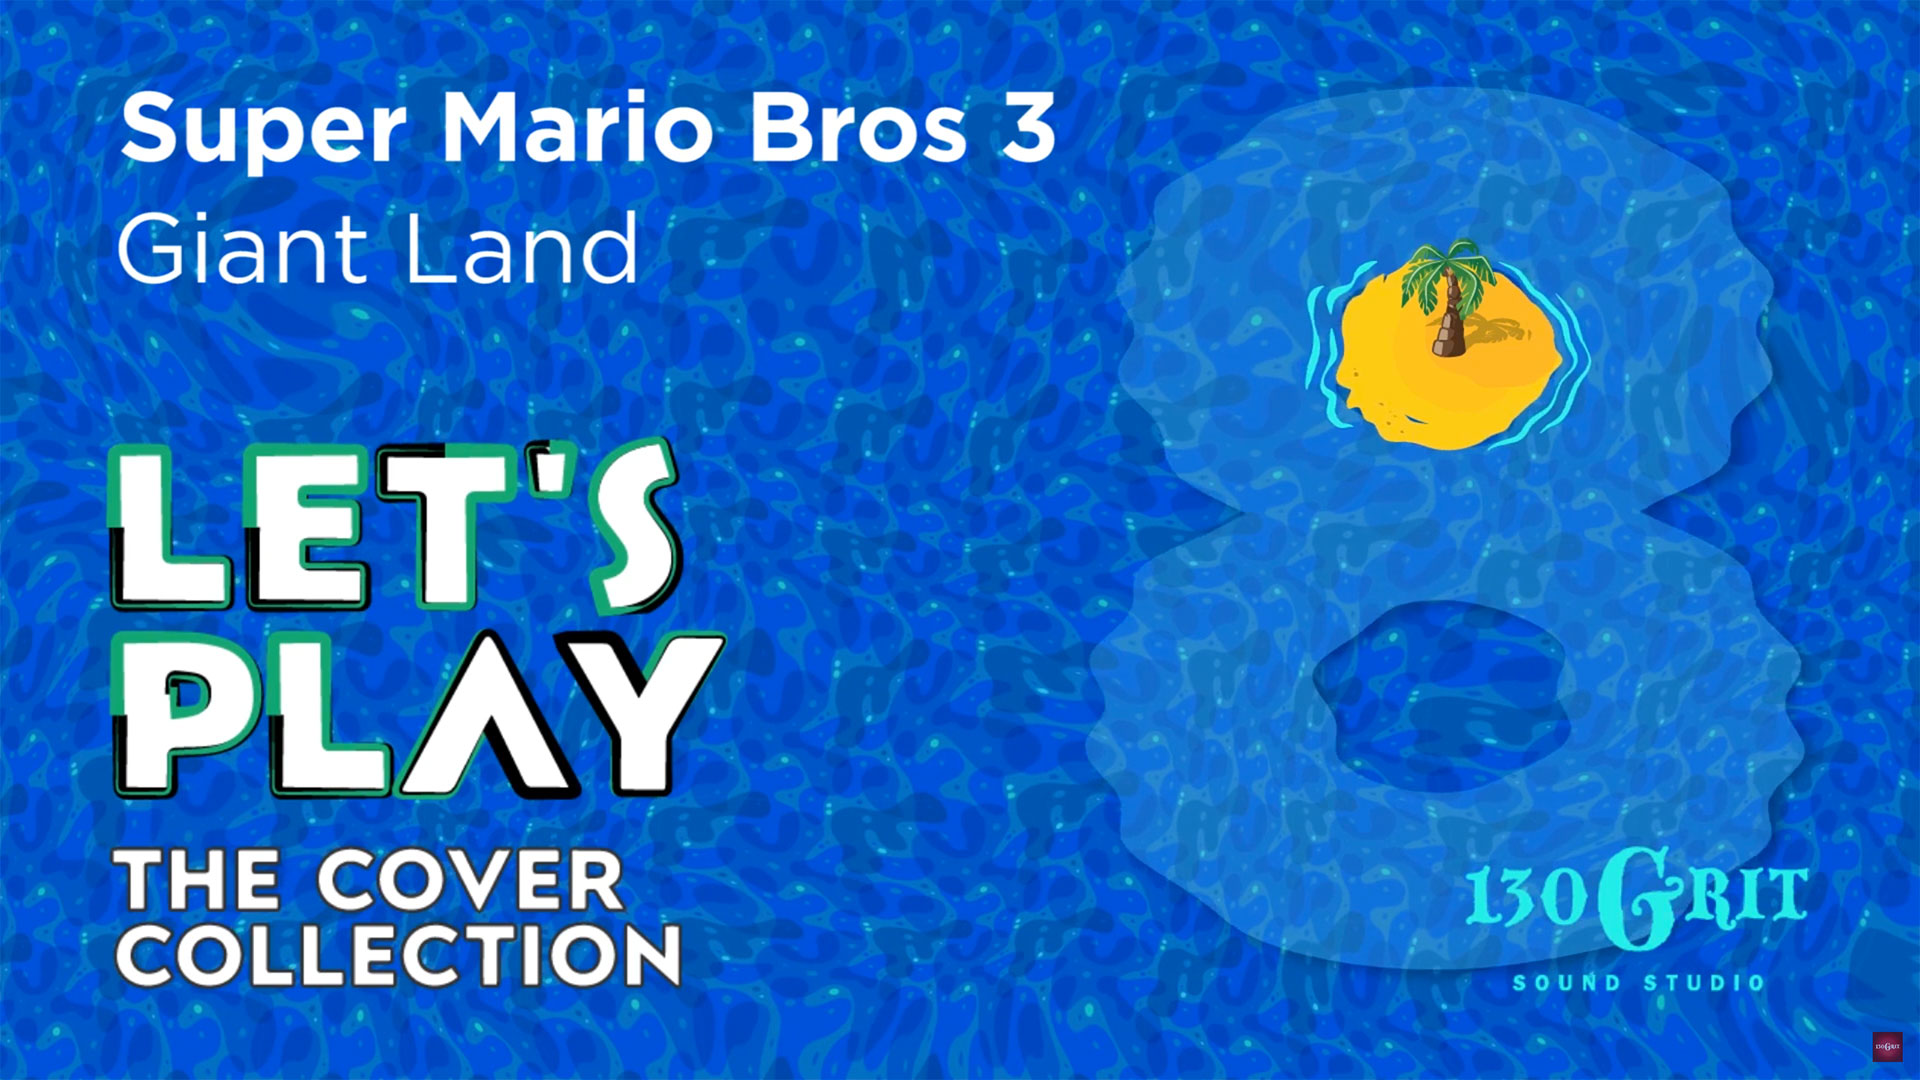 Super Mario Bros 3 – Giant Land (Jazz/Funk Cover)